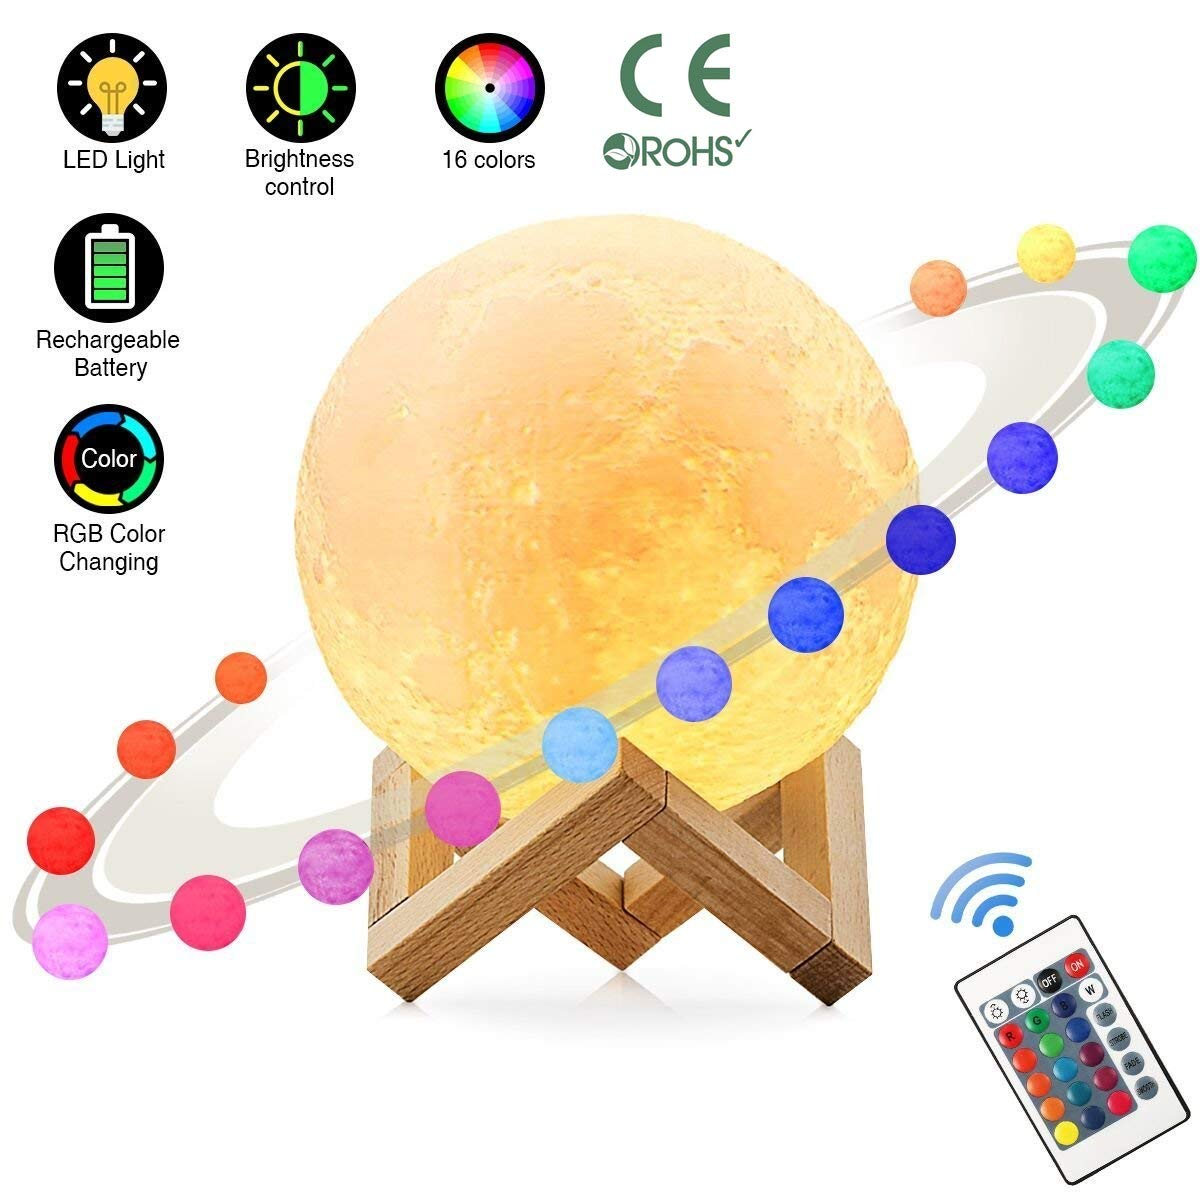 Zahala Moon Lamp with 16 Colors,3D Print Moon Light with Wooden Stand & Remote & Touch Control and USB Recharge,PLA Material,Lovely Night Light for Baby Kids Lover Birthday Party Gifts